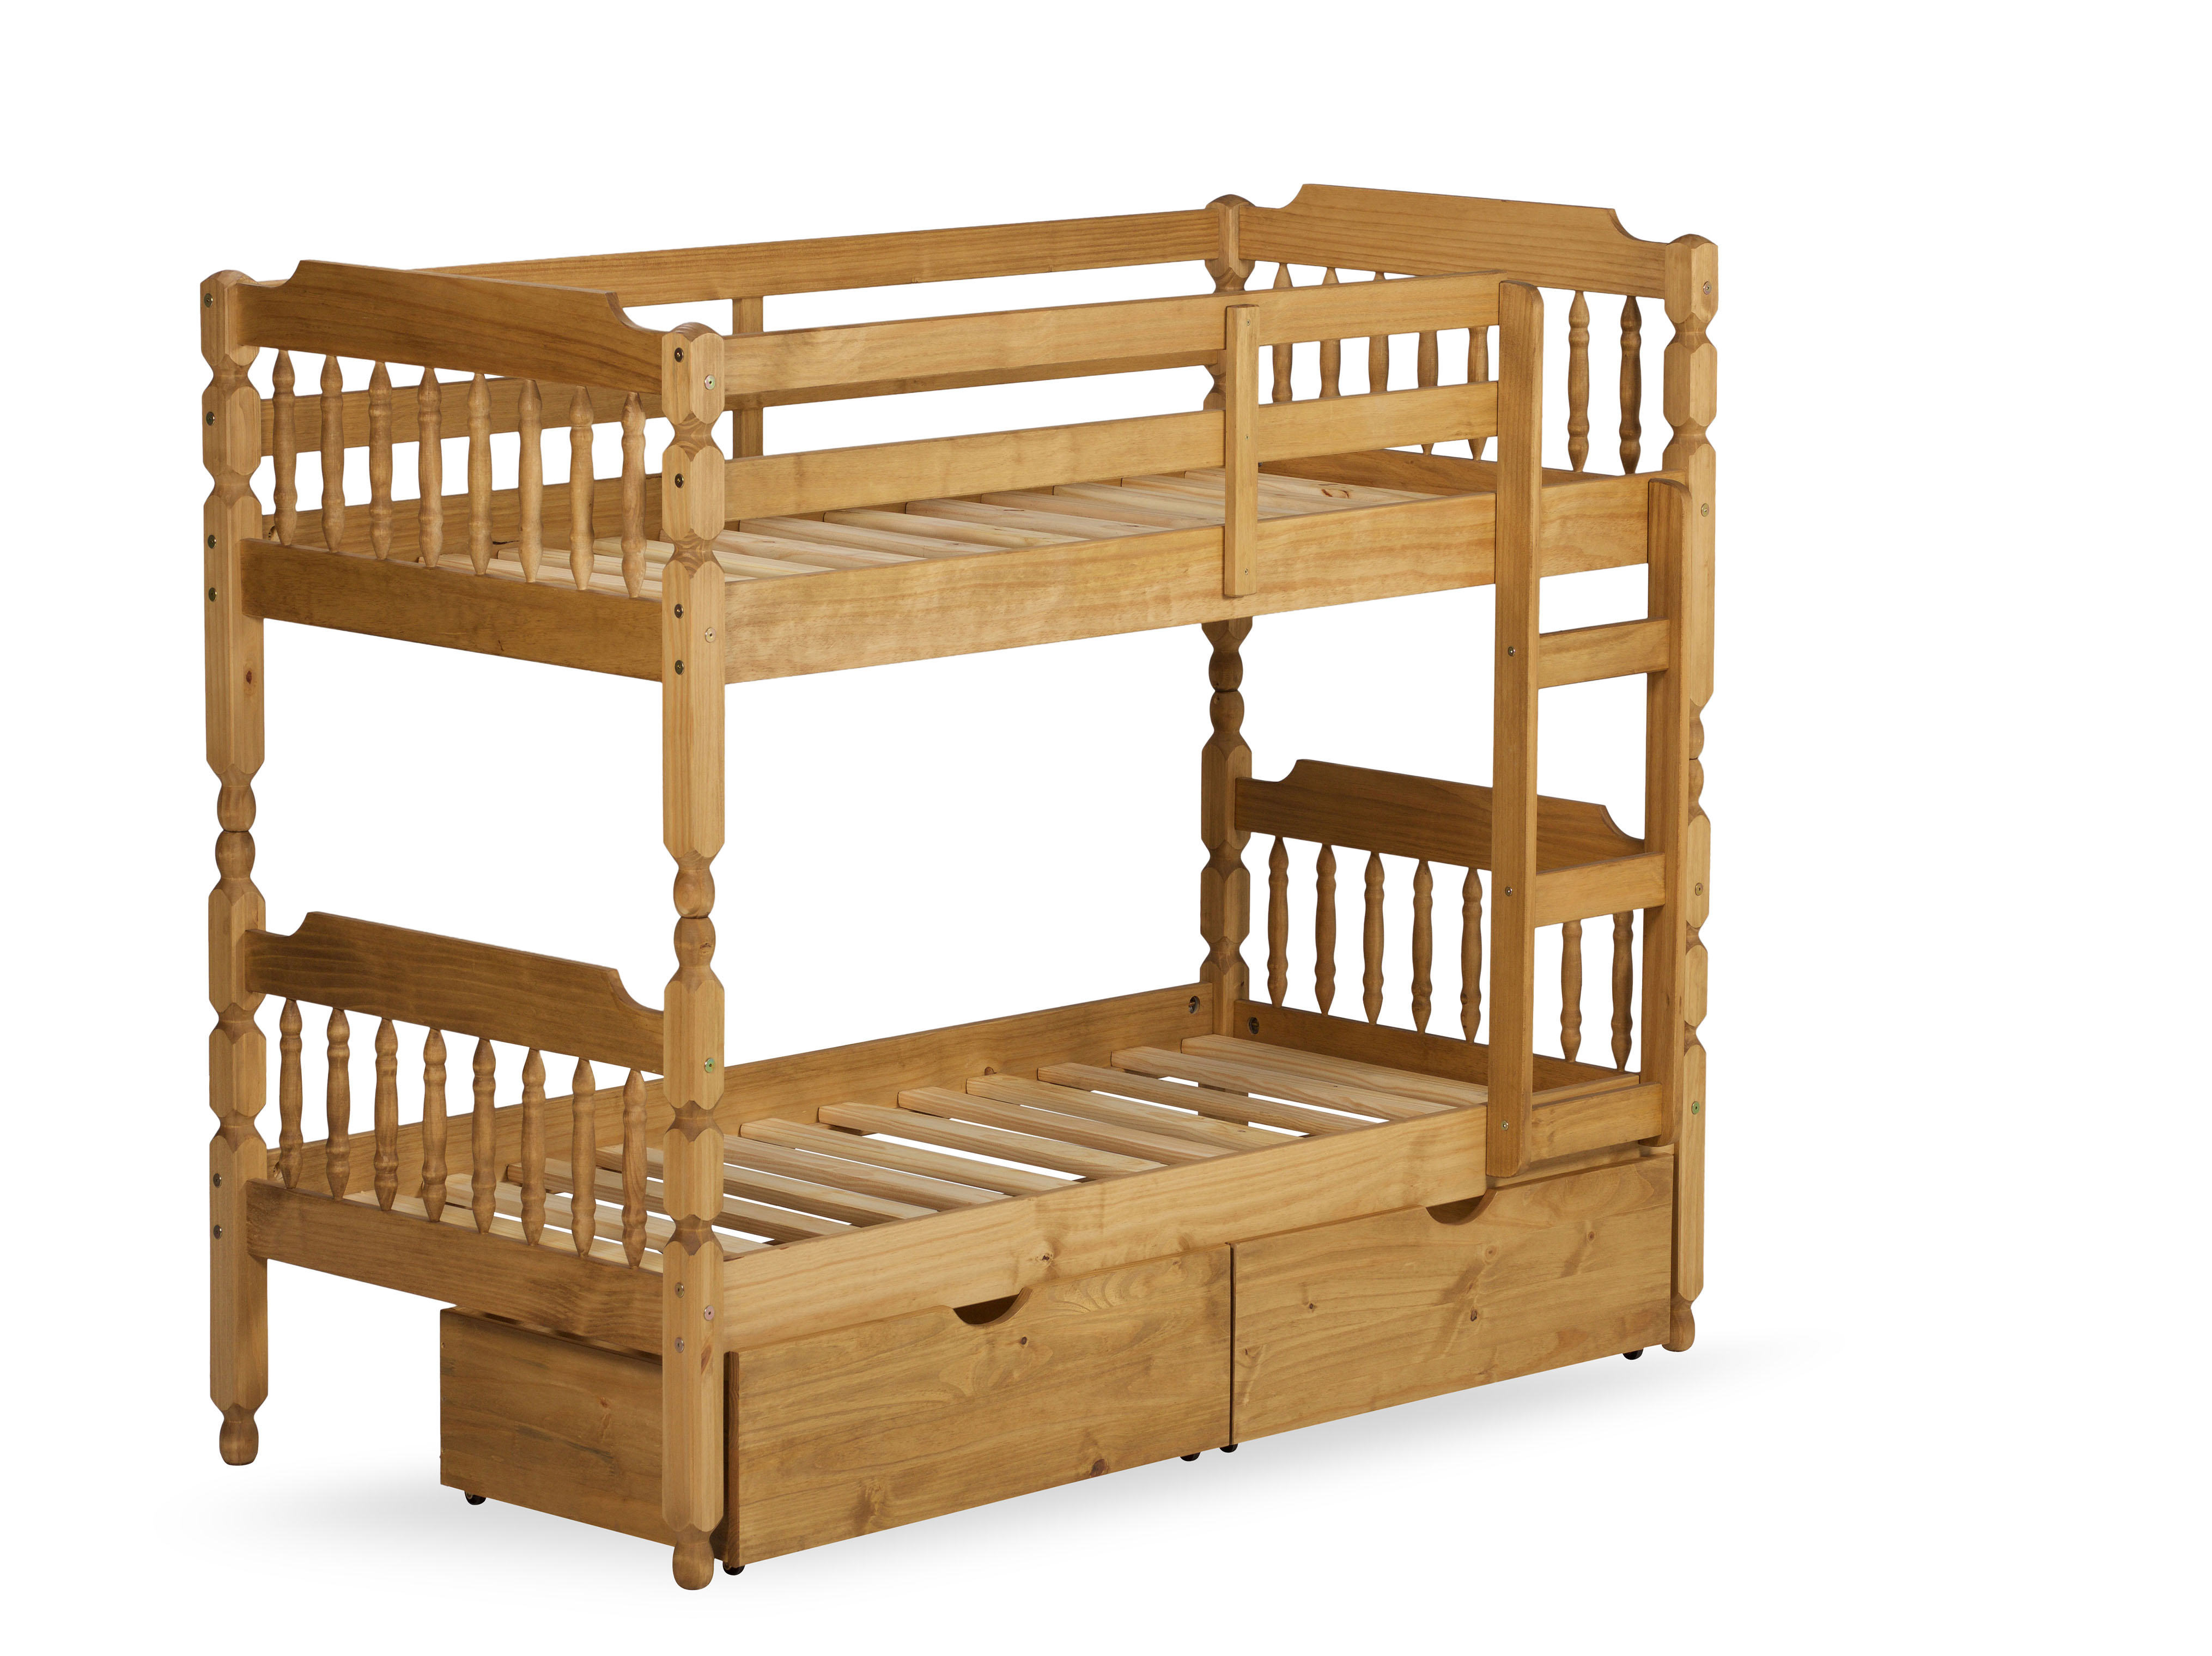 3FT COLONIAL SPINDLE BUNK BED IN WAXED PINE